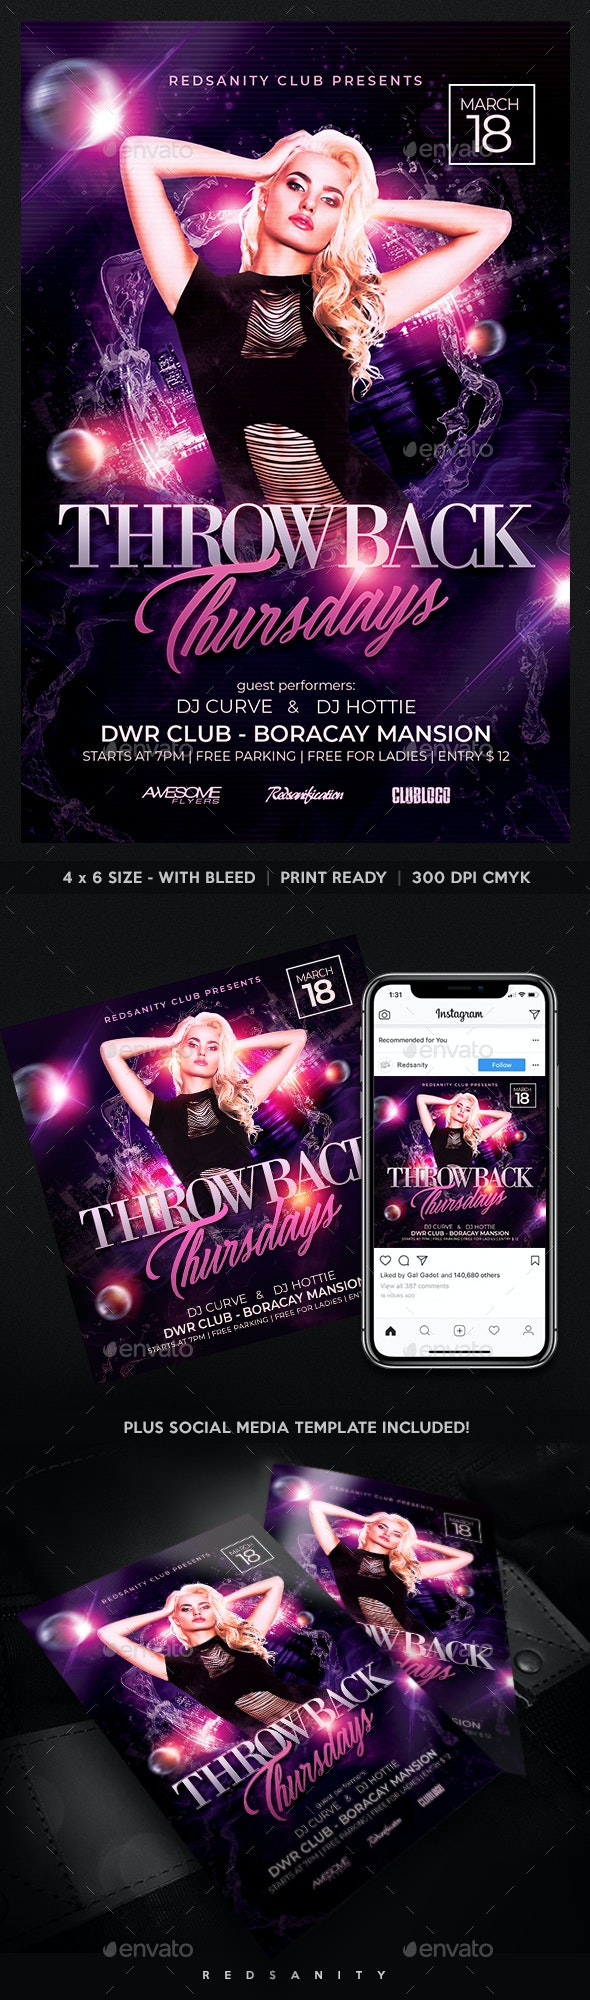 Throwback Thursday Party Flyer - Clubs & Parties Events